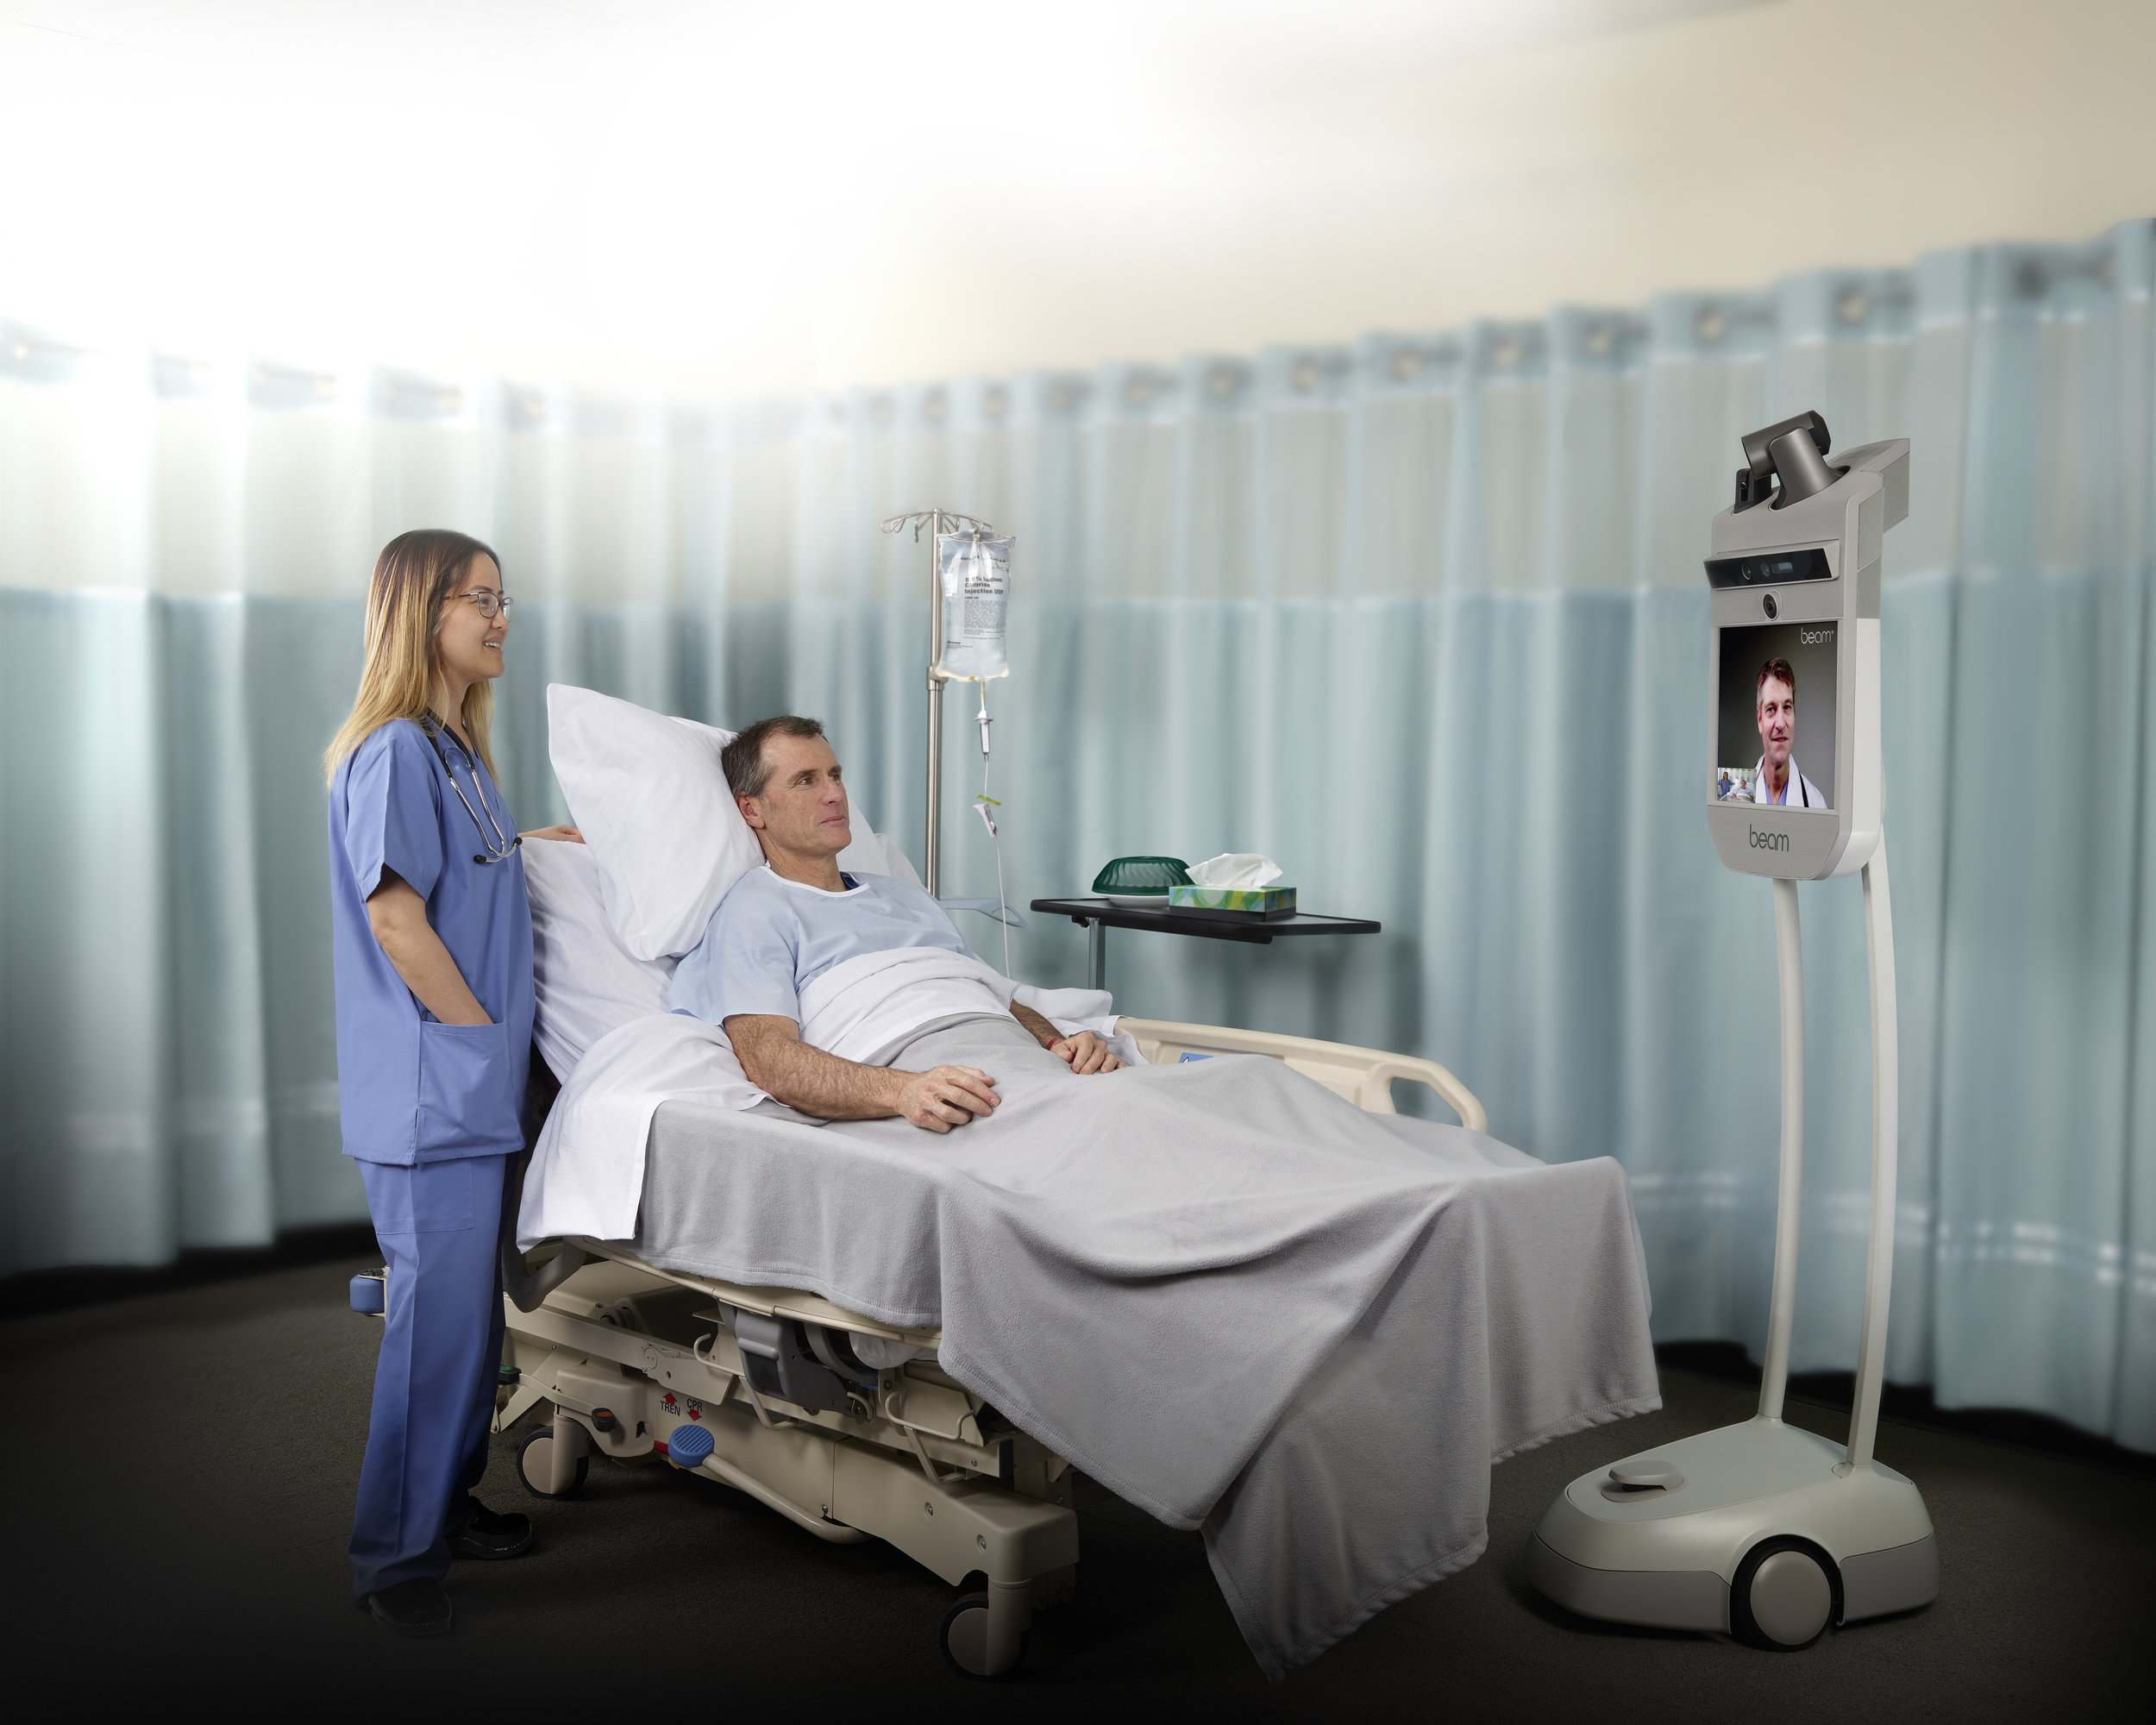 Beam Pro with optional Pan-Tilt-Zoom camera and laser pointer (PTZ+L) is perfect for healthcare